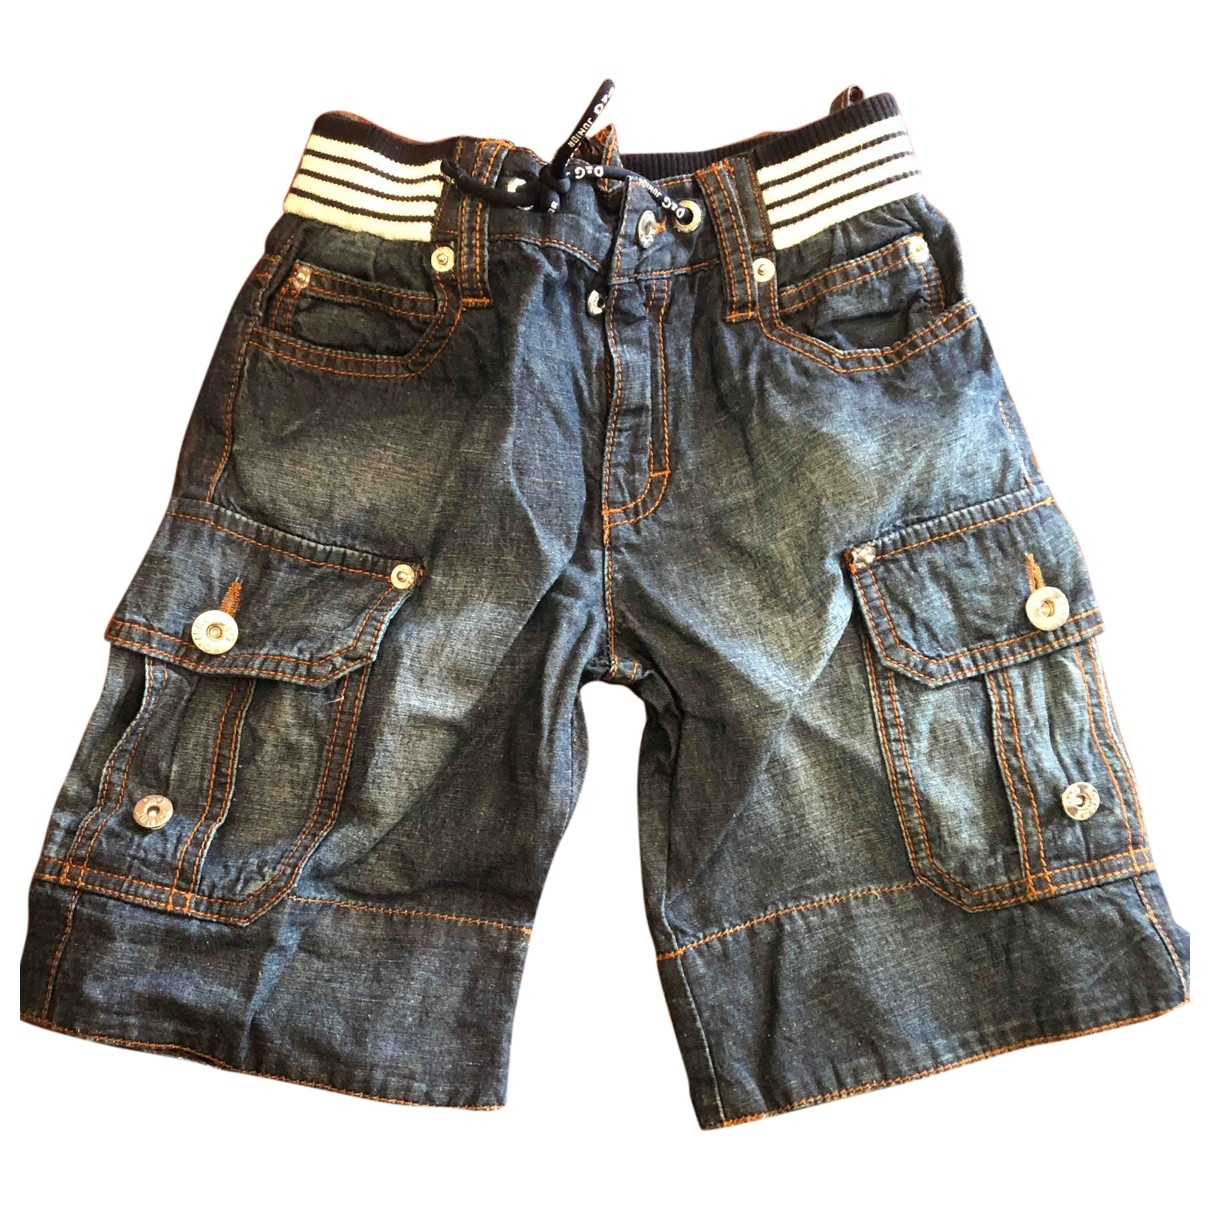 D&g \N Denim - Jeans Shorts for Kids 4 years - up to 102cm FR